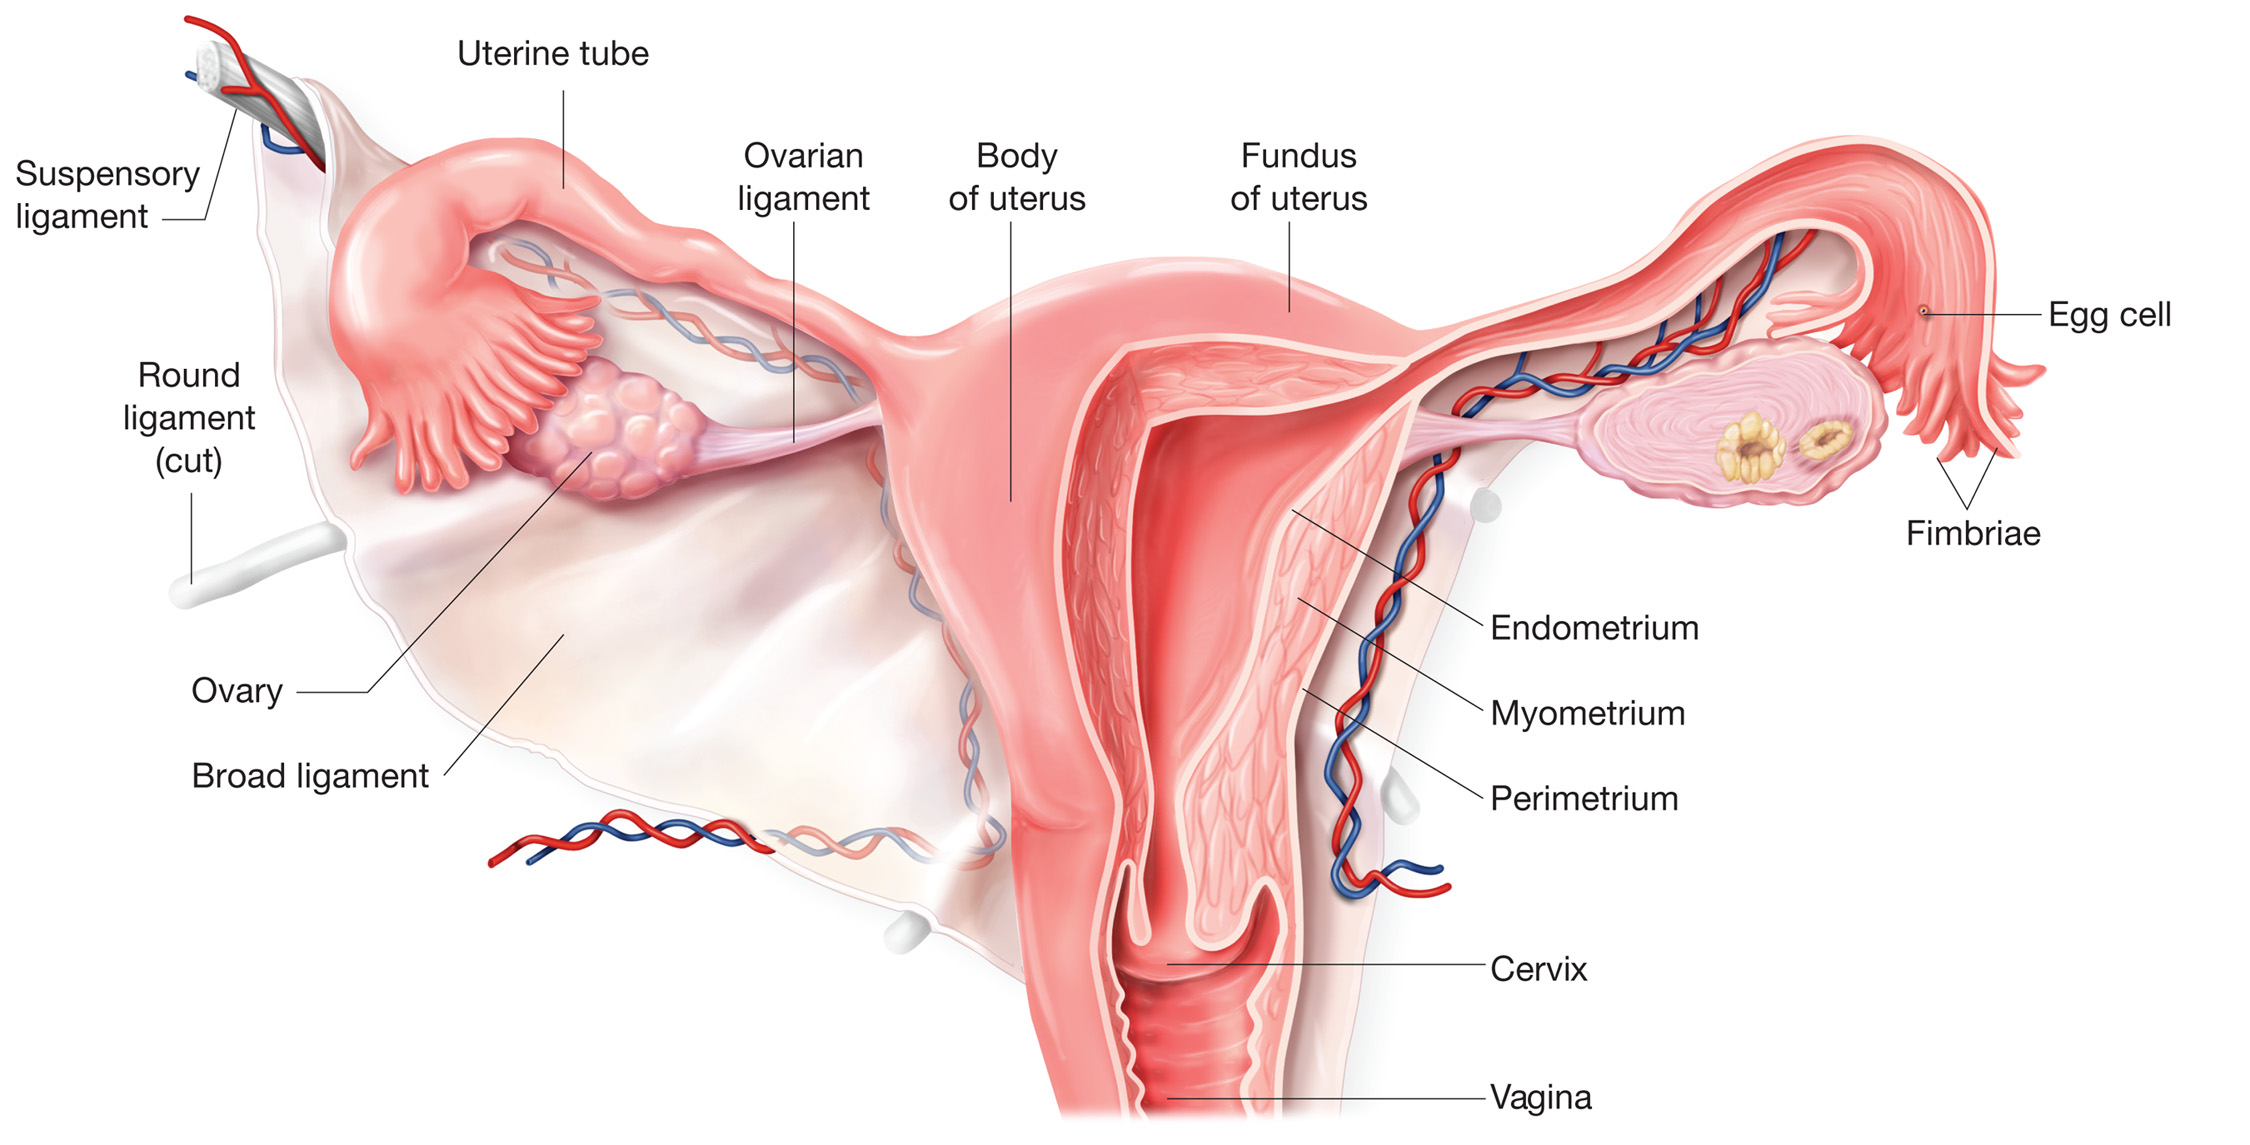 The Uterus Anatomy Of The Uterus Physiology Of The Uterus